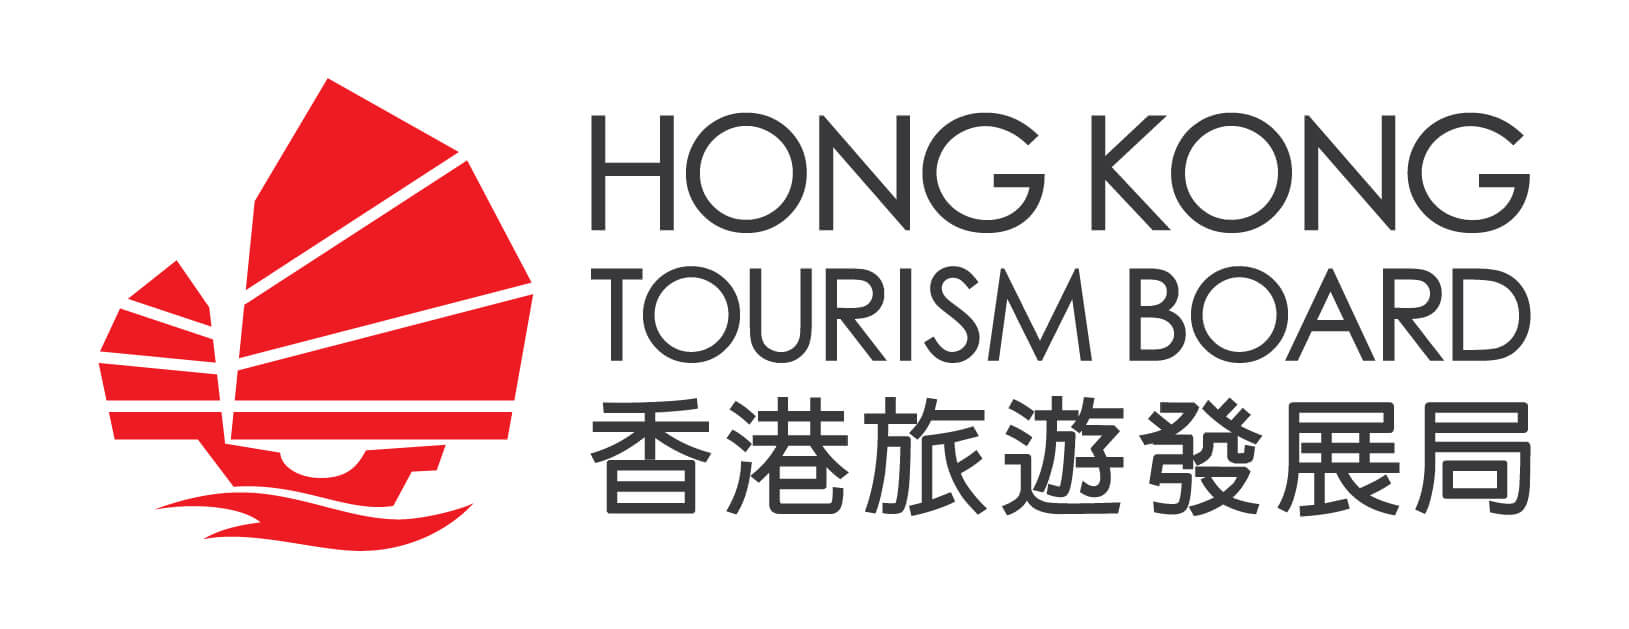 Hong Kong Tourism Board hosts World's First Global Online Forum on Post-Pandemic Travel